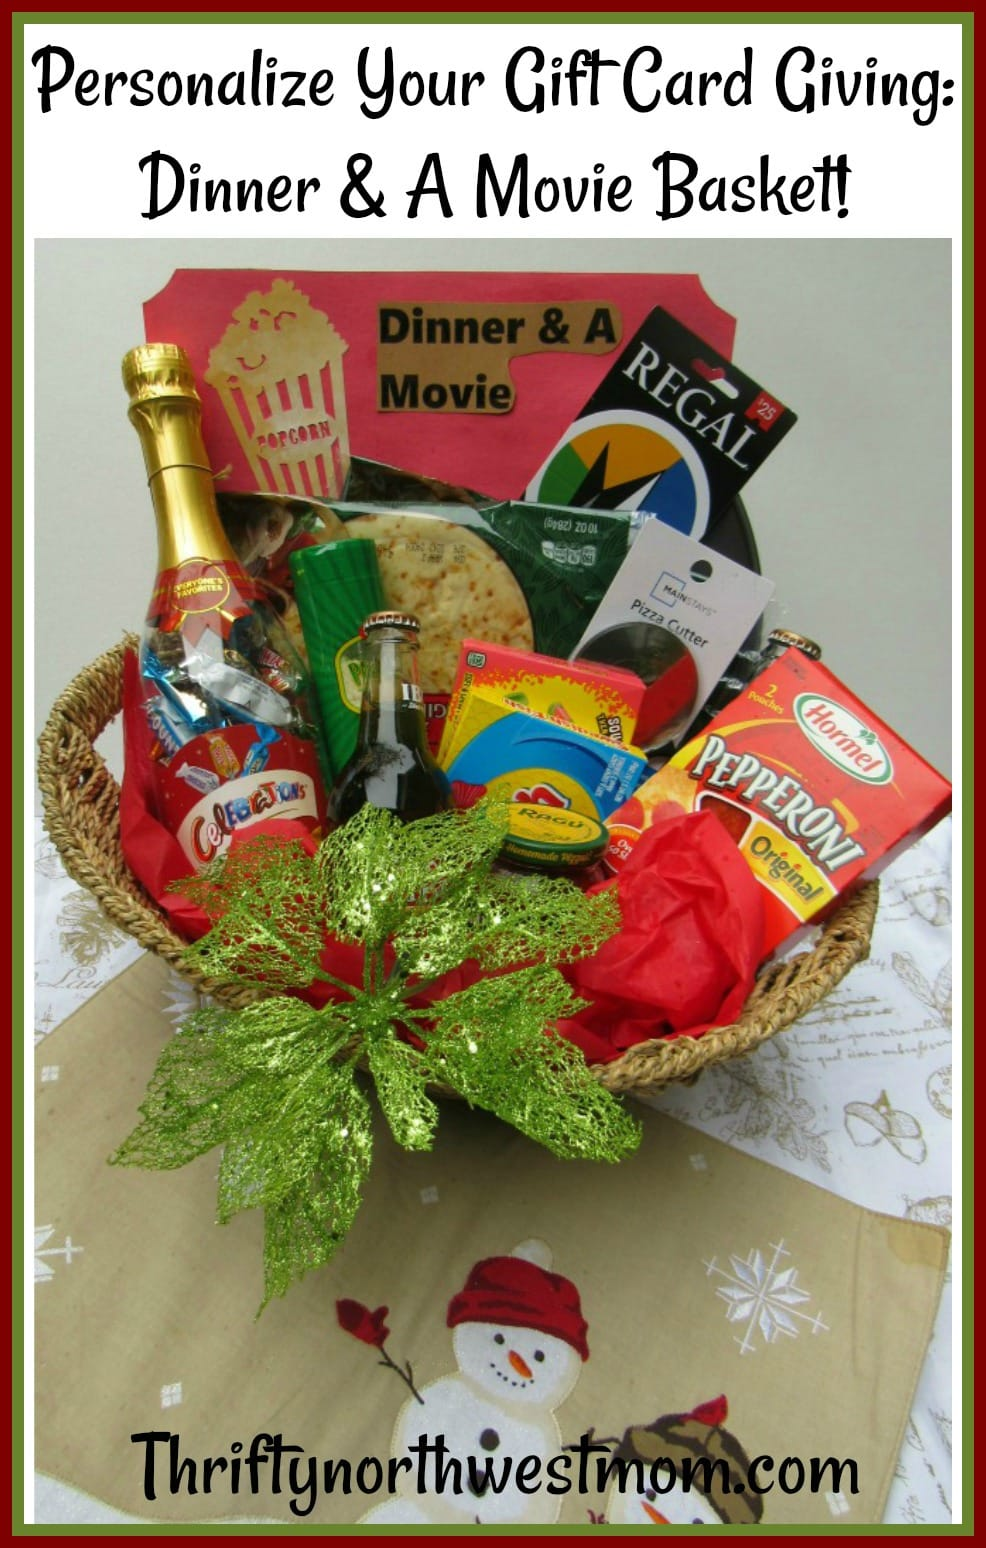 Christmas Gift Baskets Ideas.Dinner A Movie Gift Basket Idea How To Personalize Your